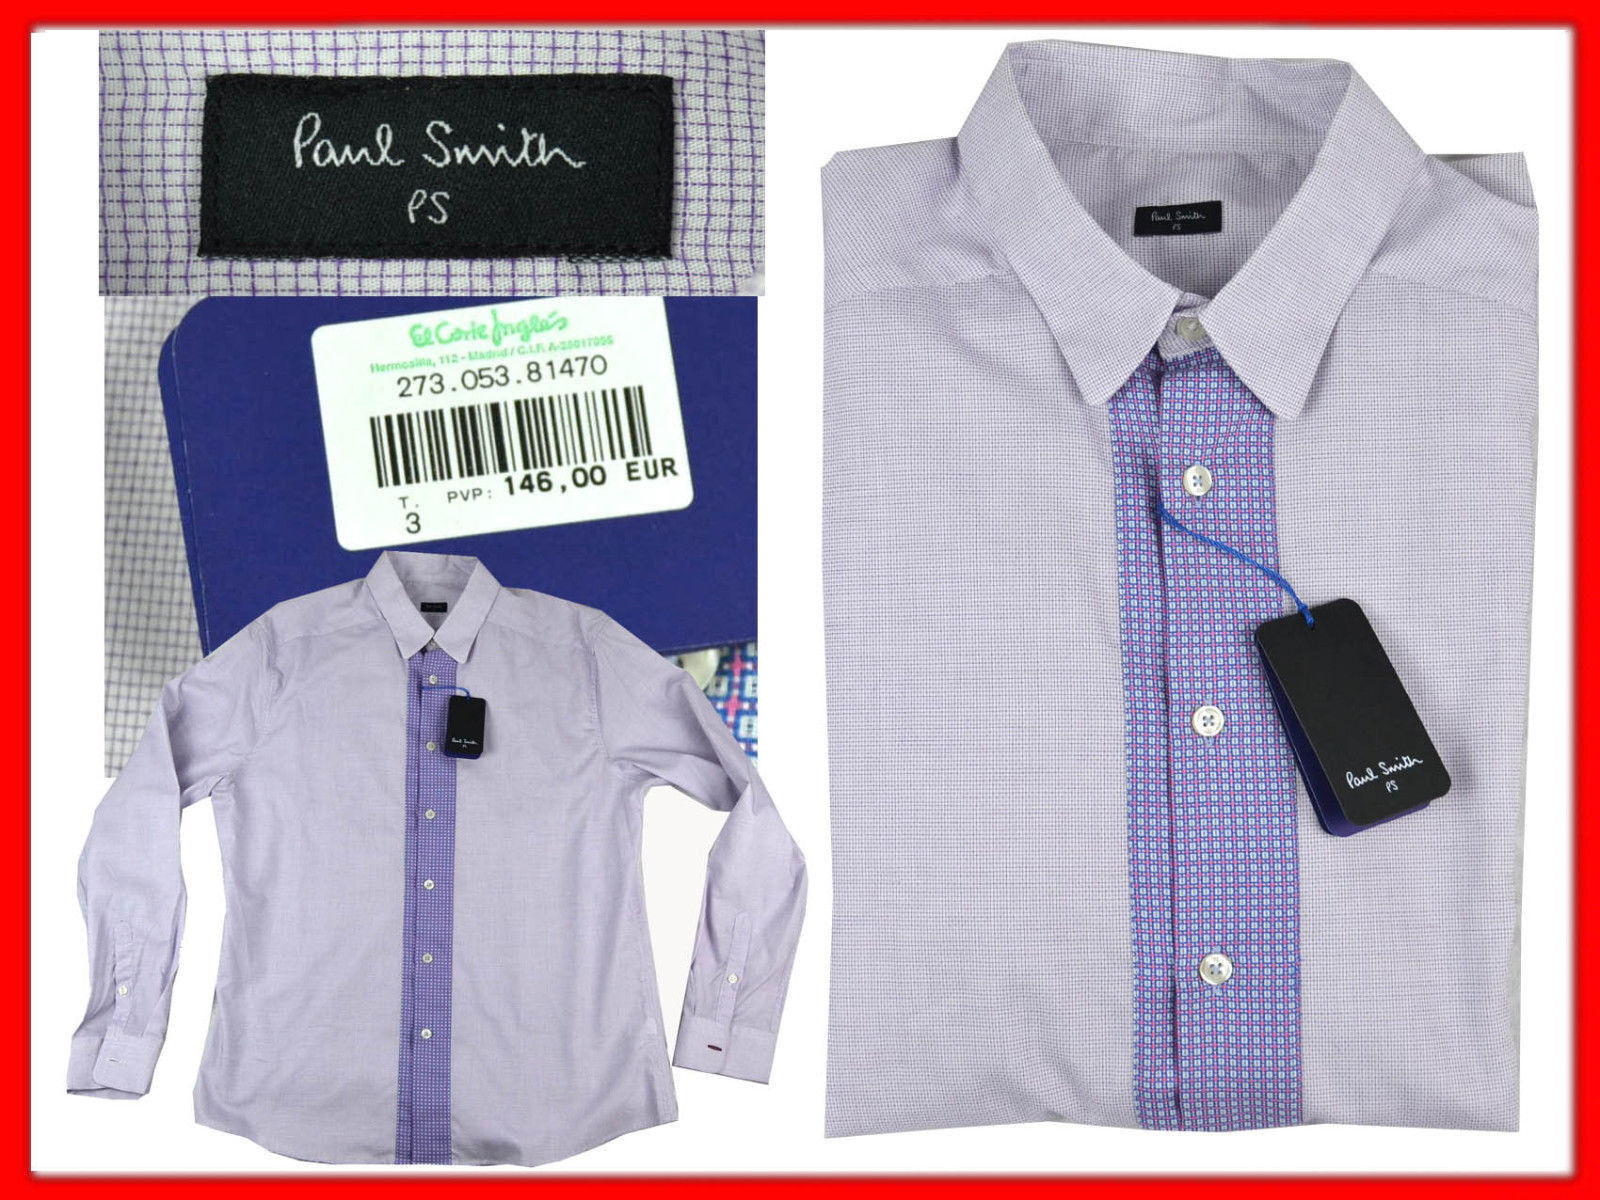 Paul Smith Shirt For Man Size L European  UNTIL - 80 % PS16 TOD1